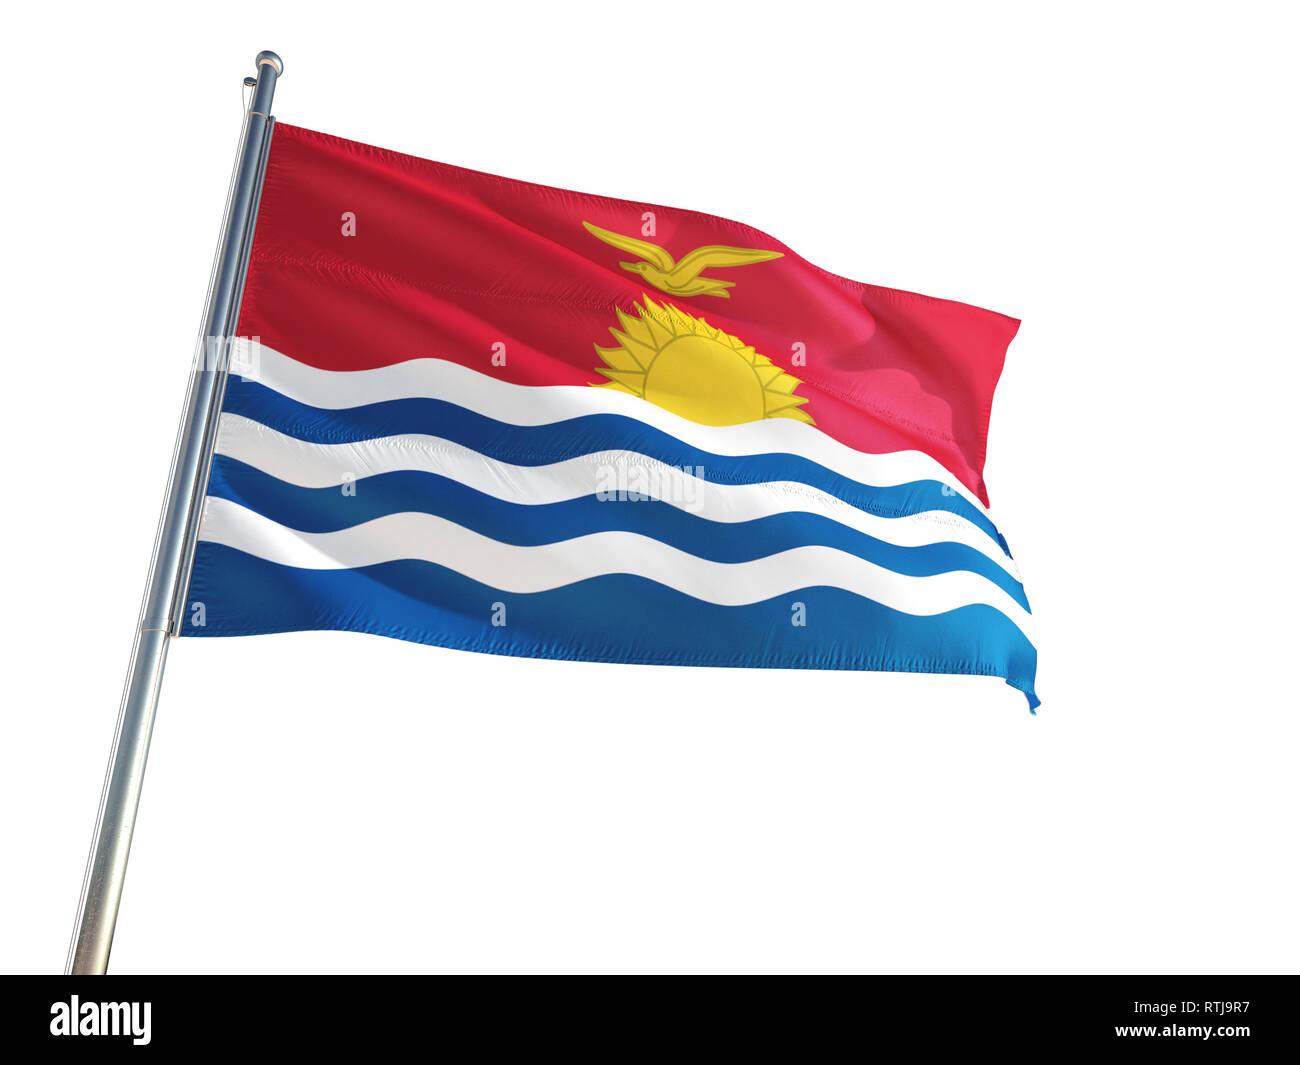 Kiribati National Flag waving in the wind, isolated white background. High Definition - Stock Image